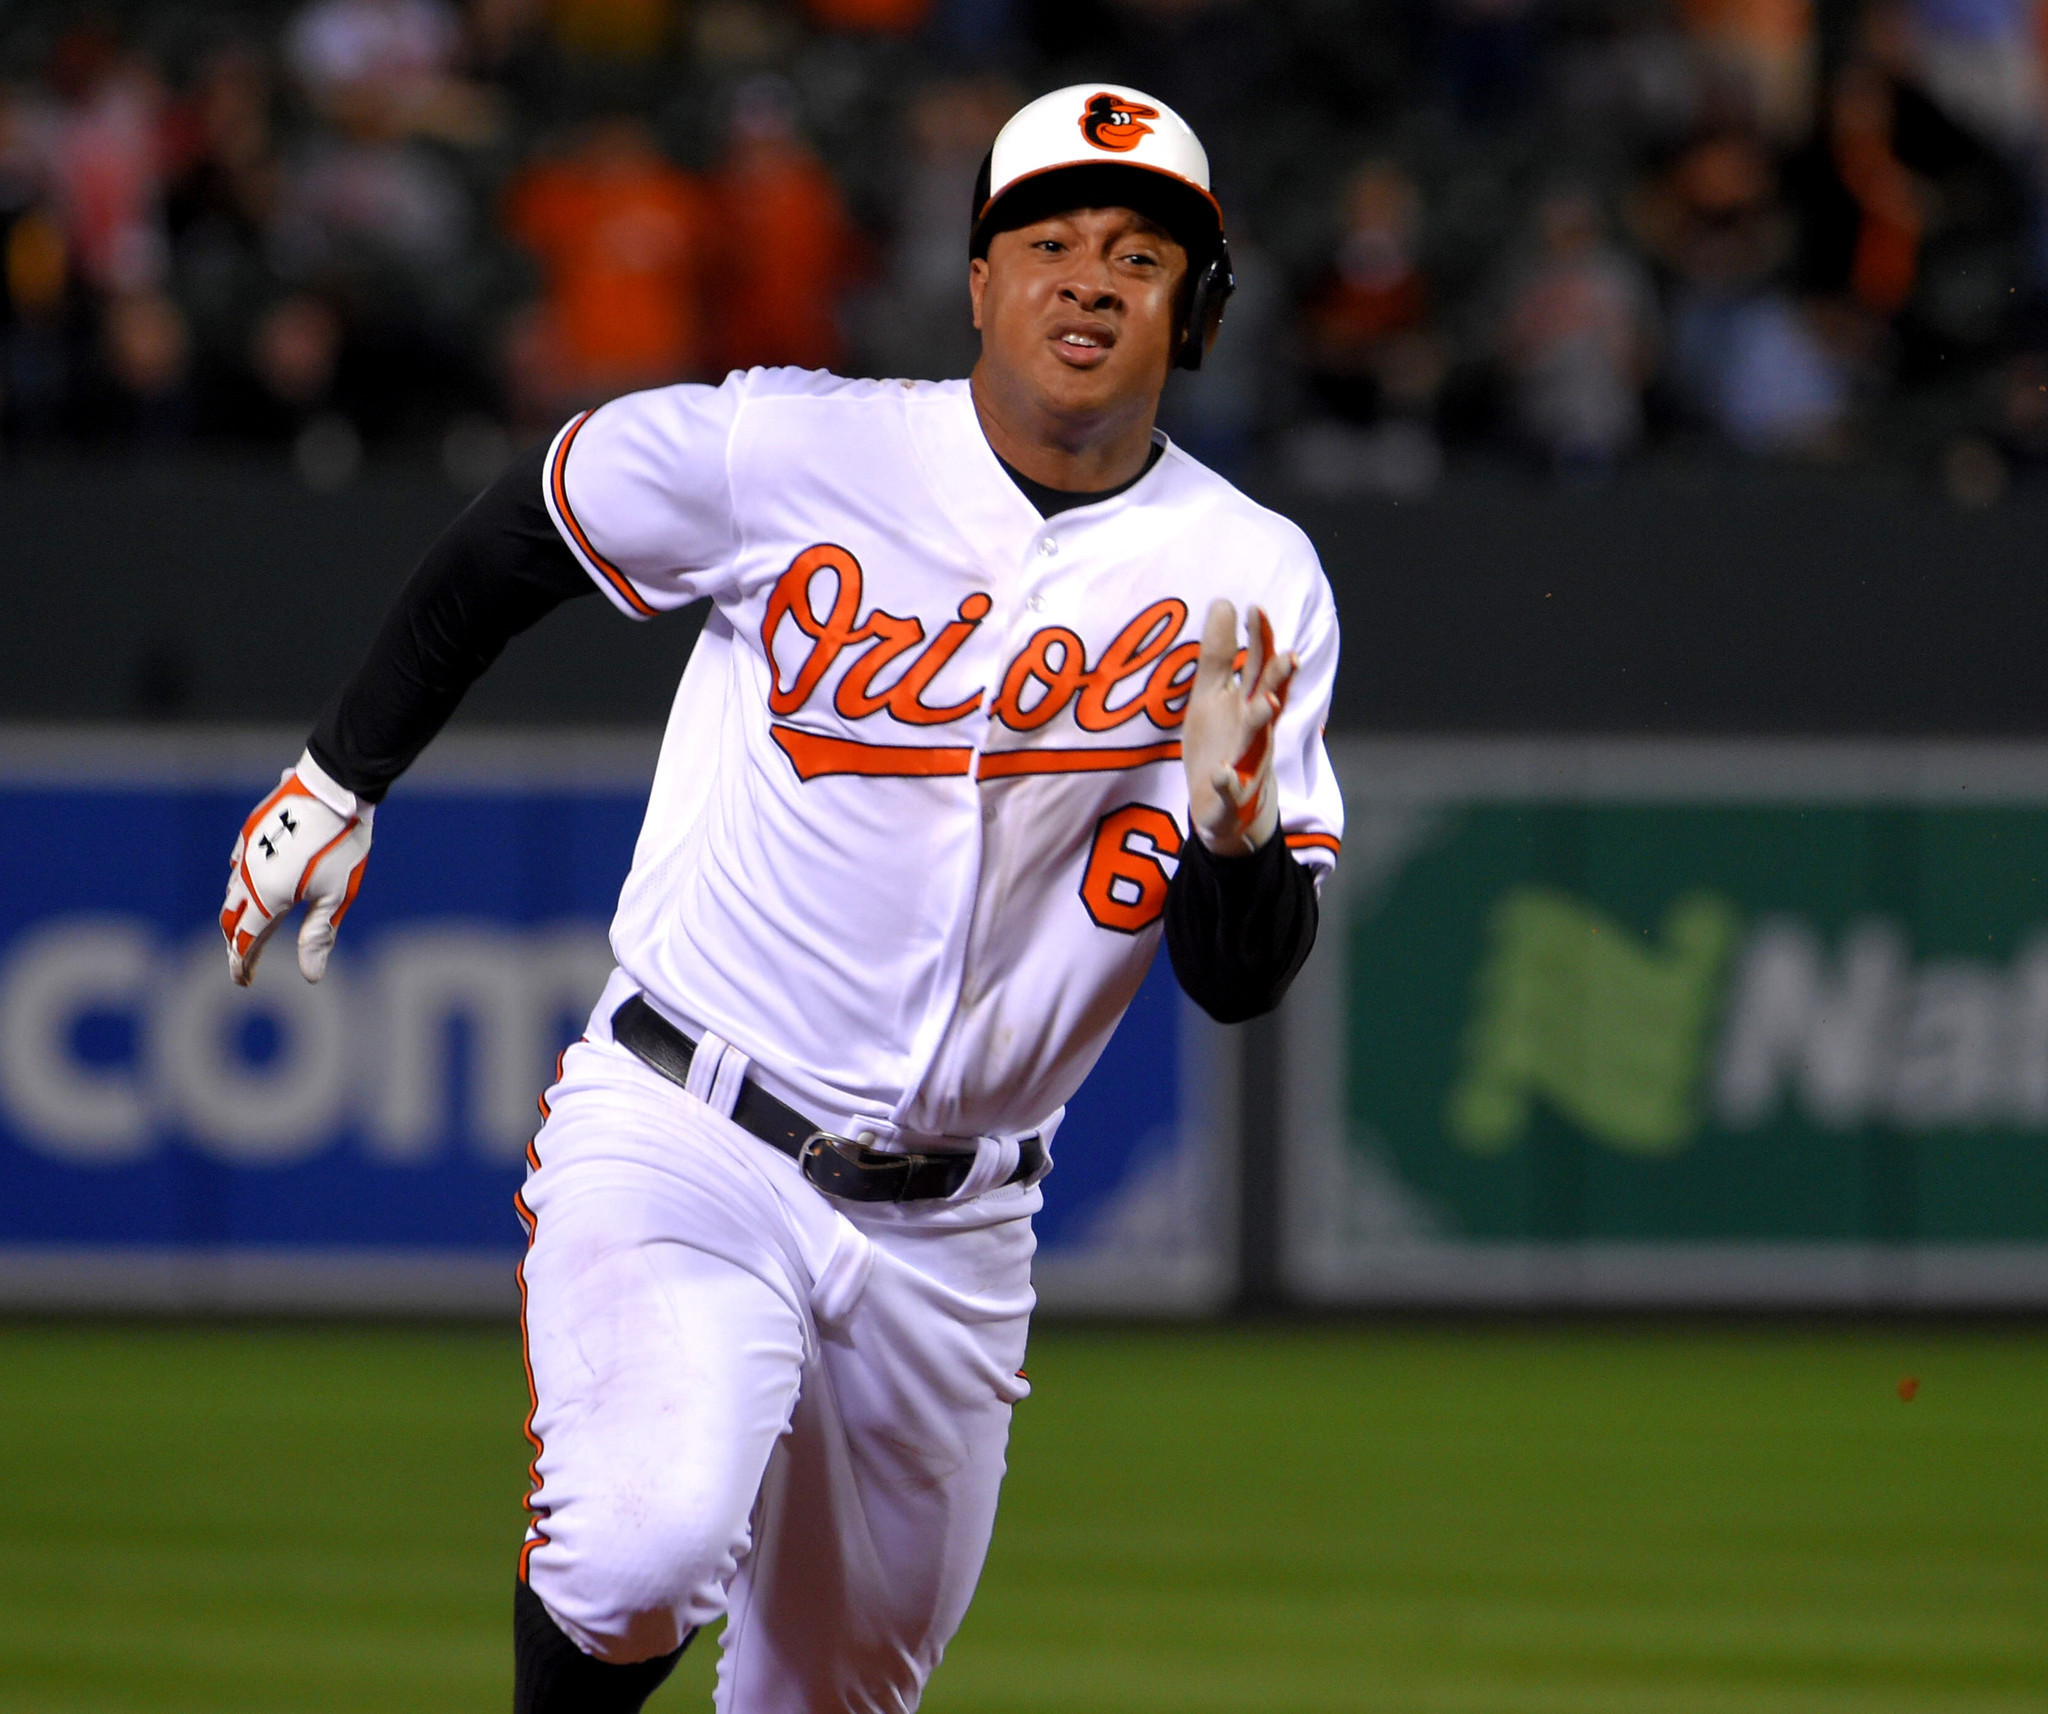 Orioles concede night without home run is 'unusual,' but result remains the same - Baltimore Sun